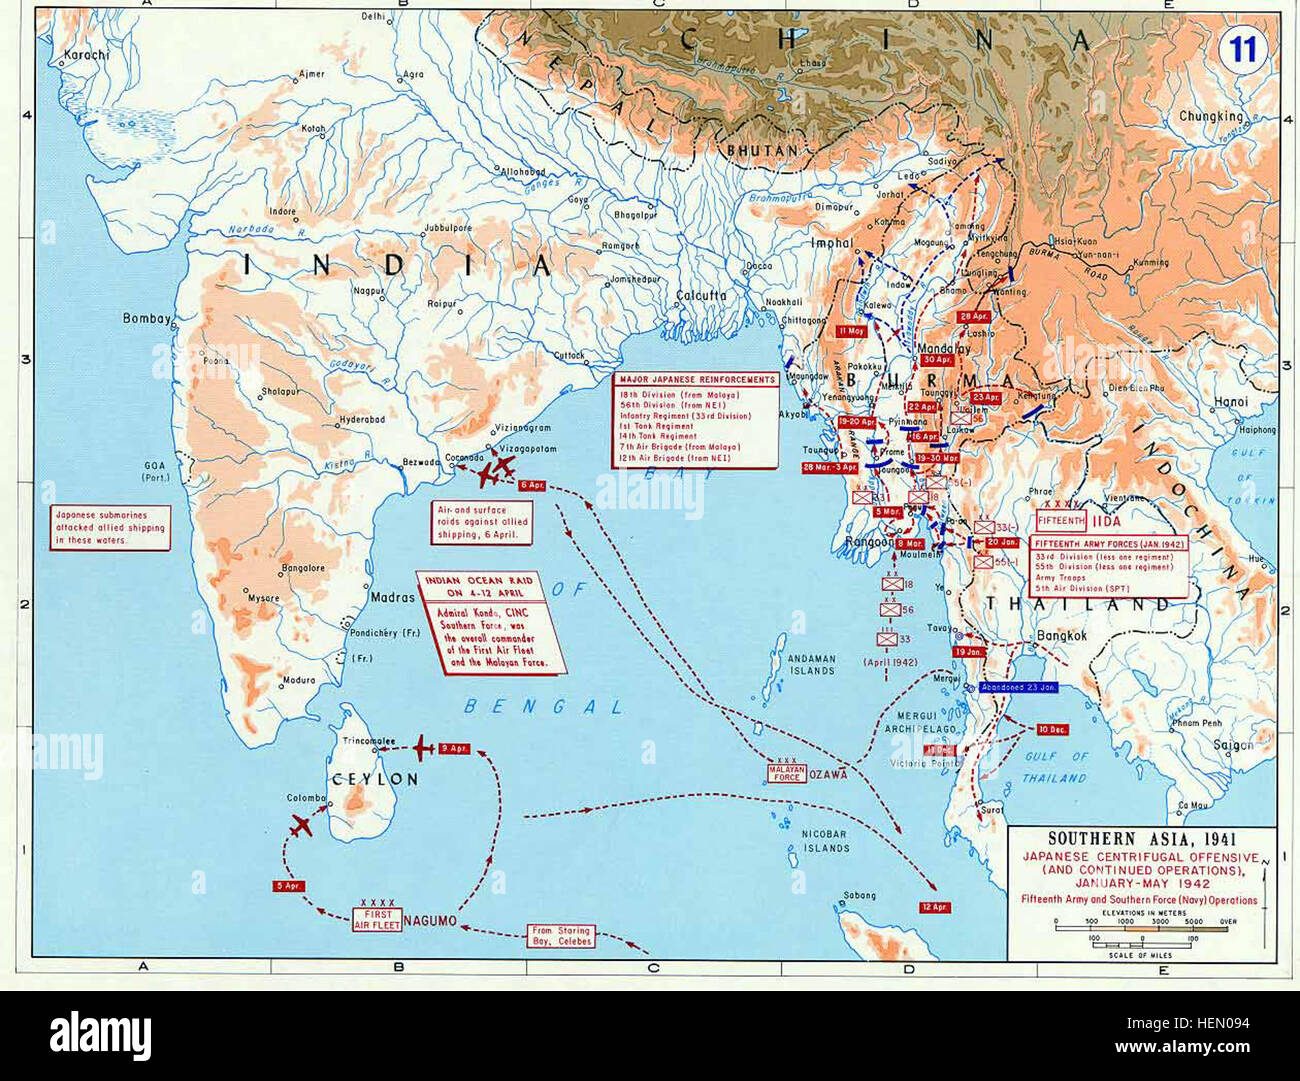 Pacific War - Southern Asia 1942 - Map Stock Photo: 129539008 - Alamy